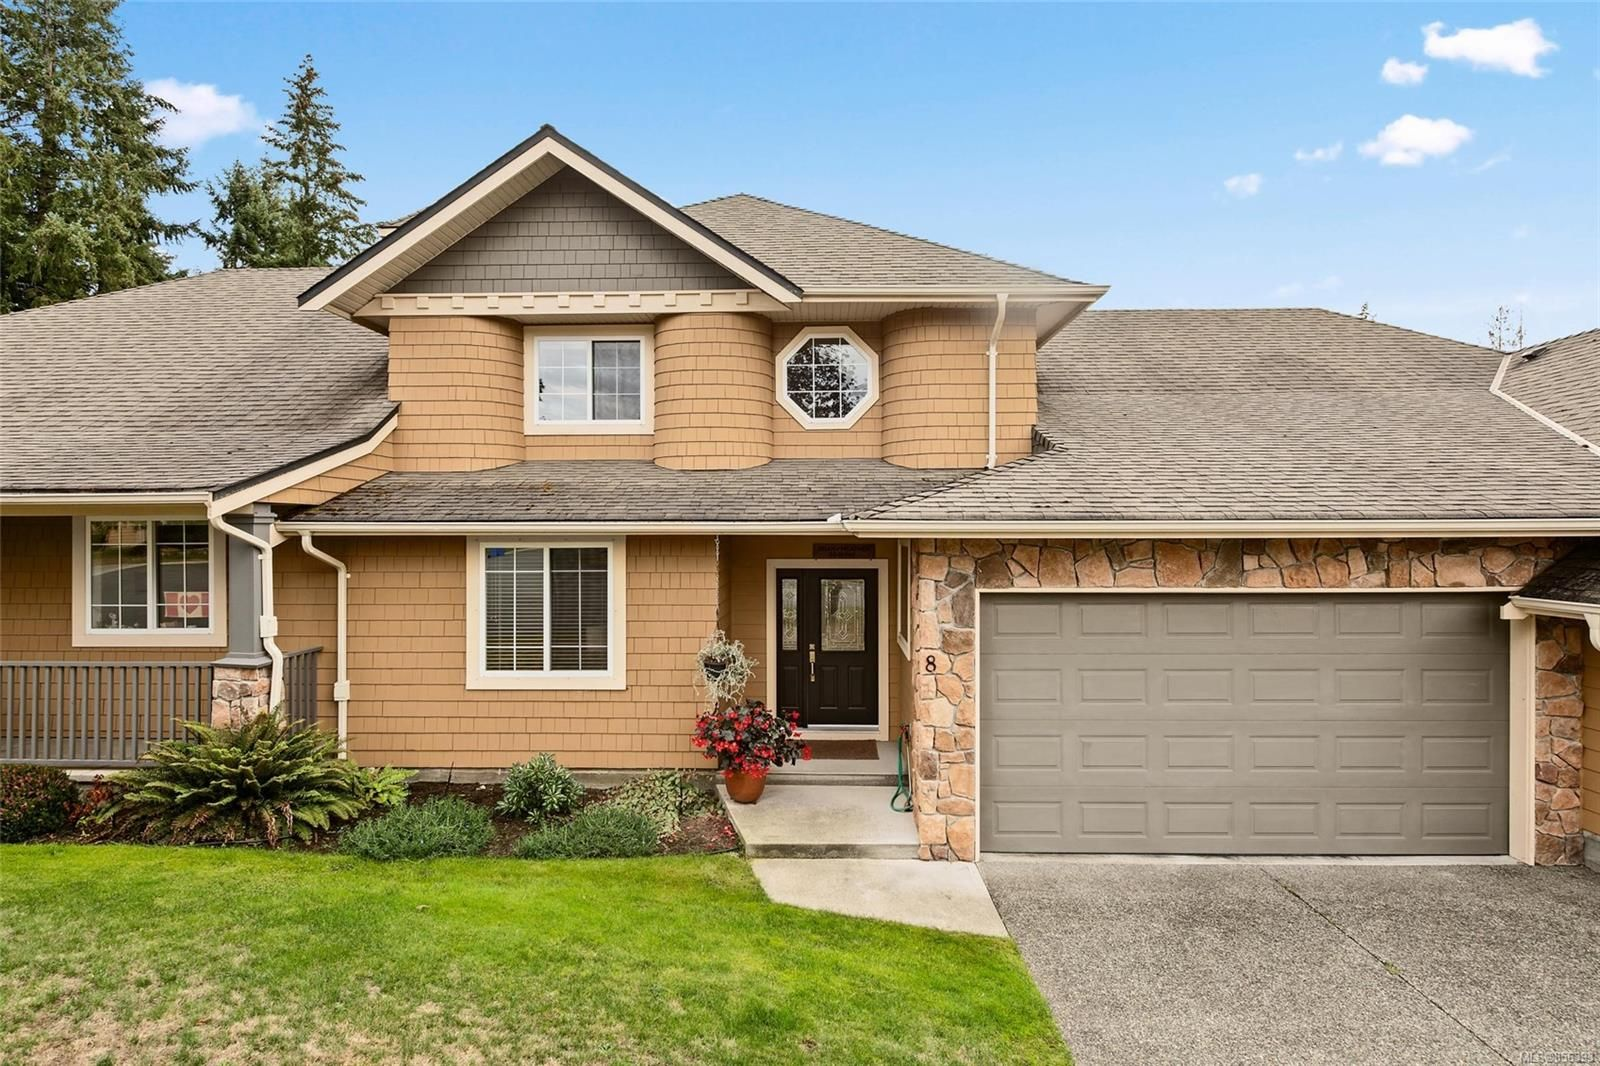 Main Photo: 8 912 Brulette Pl in : ML Mill Bay Row/Townhouse for sale (Malahat & Area)  : MLS®# 856393